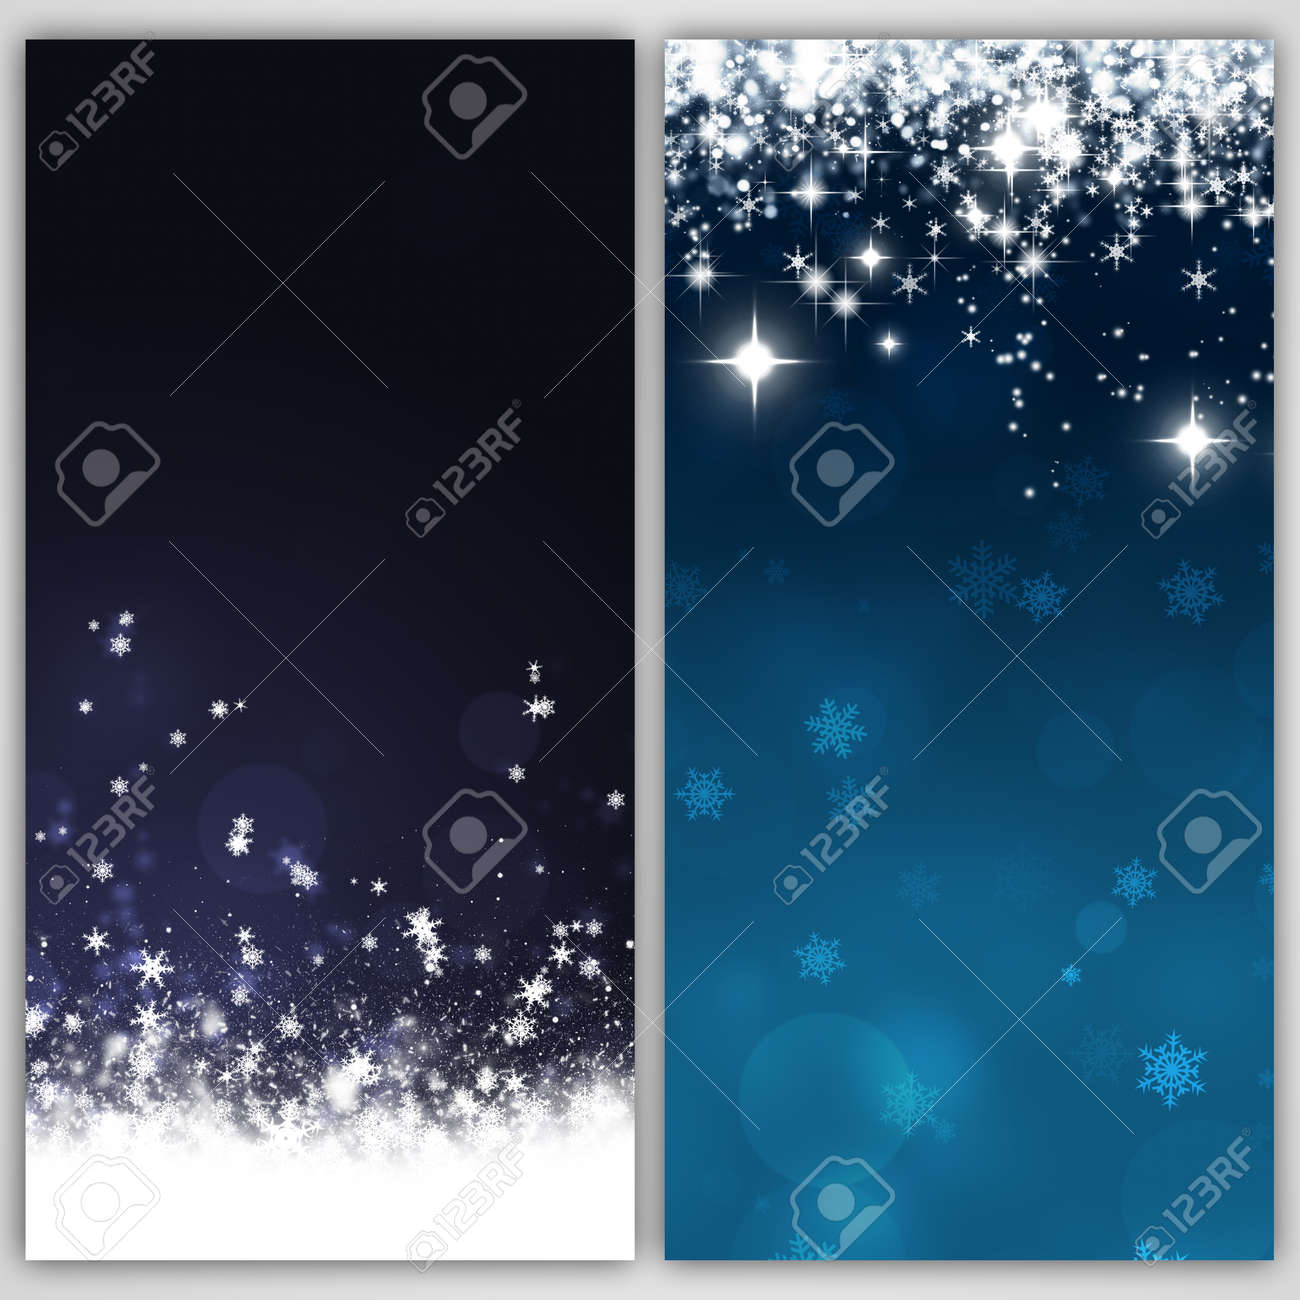 Winter Holiday Banners Womens Day Banners